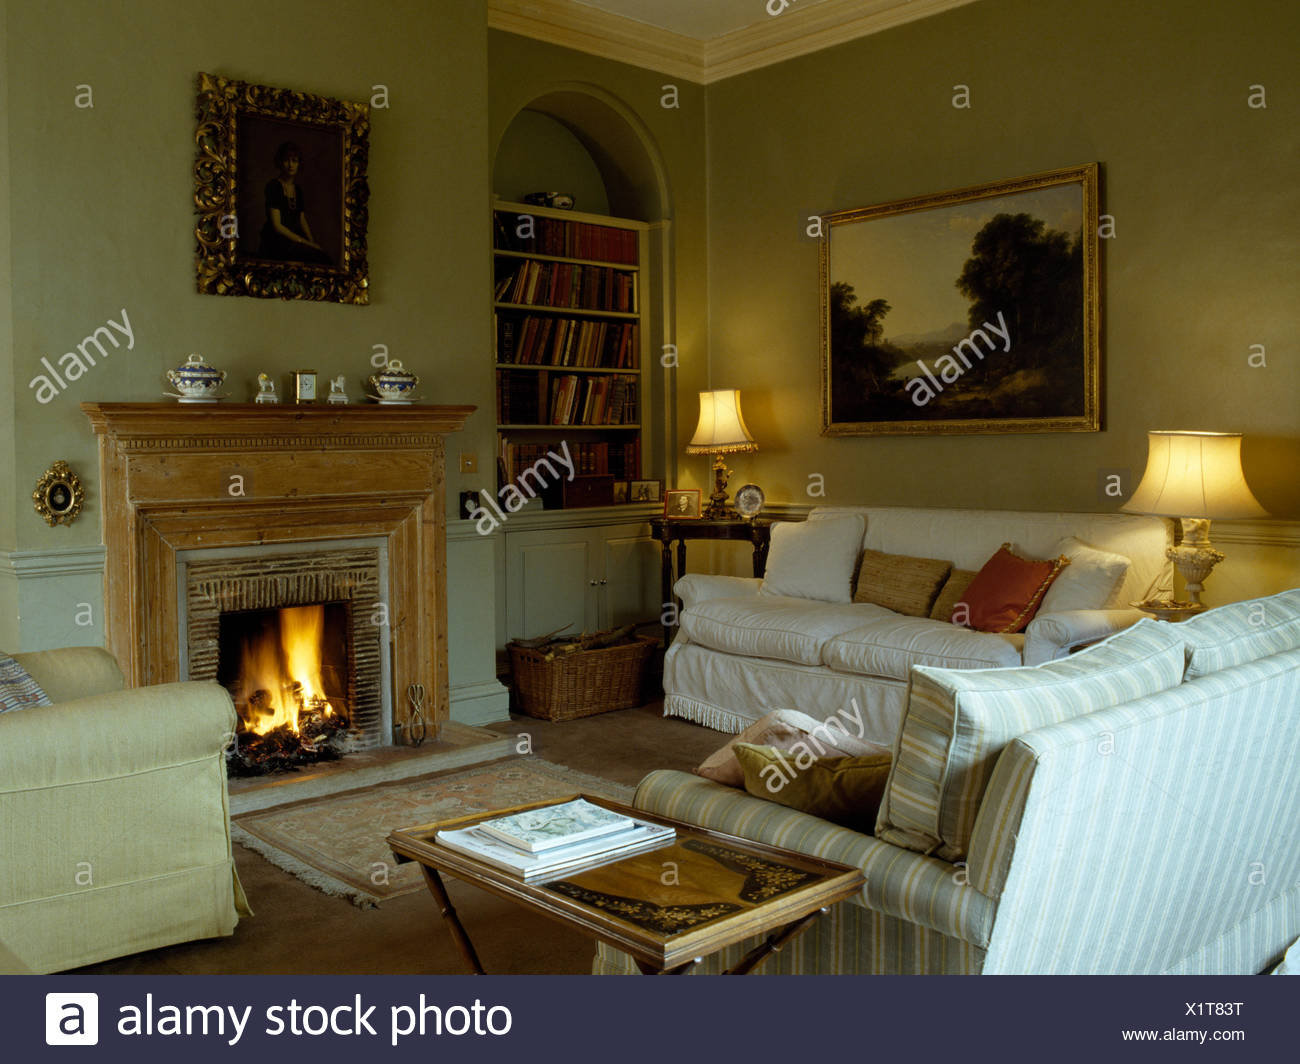 Comfortable sofas around fireplace with lighted fire in traditional style eighties sitting room Stock Photo